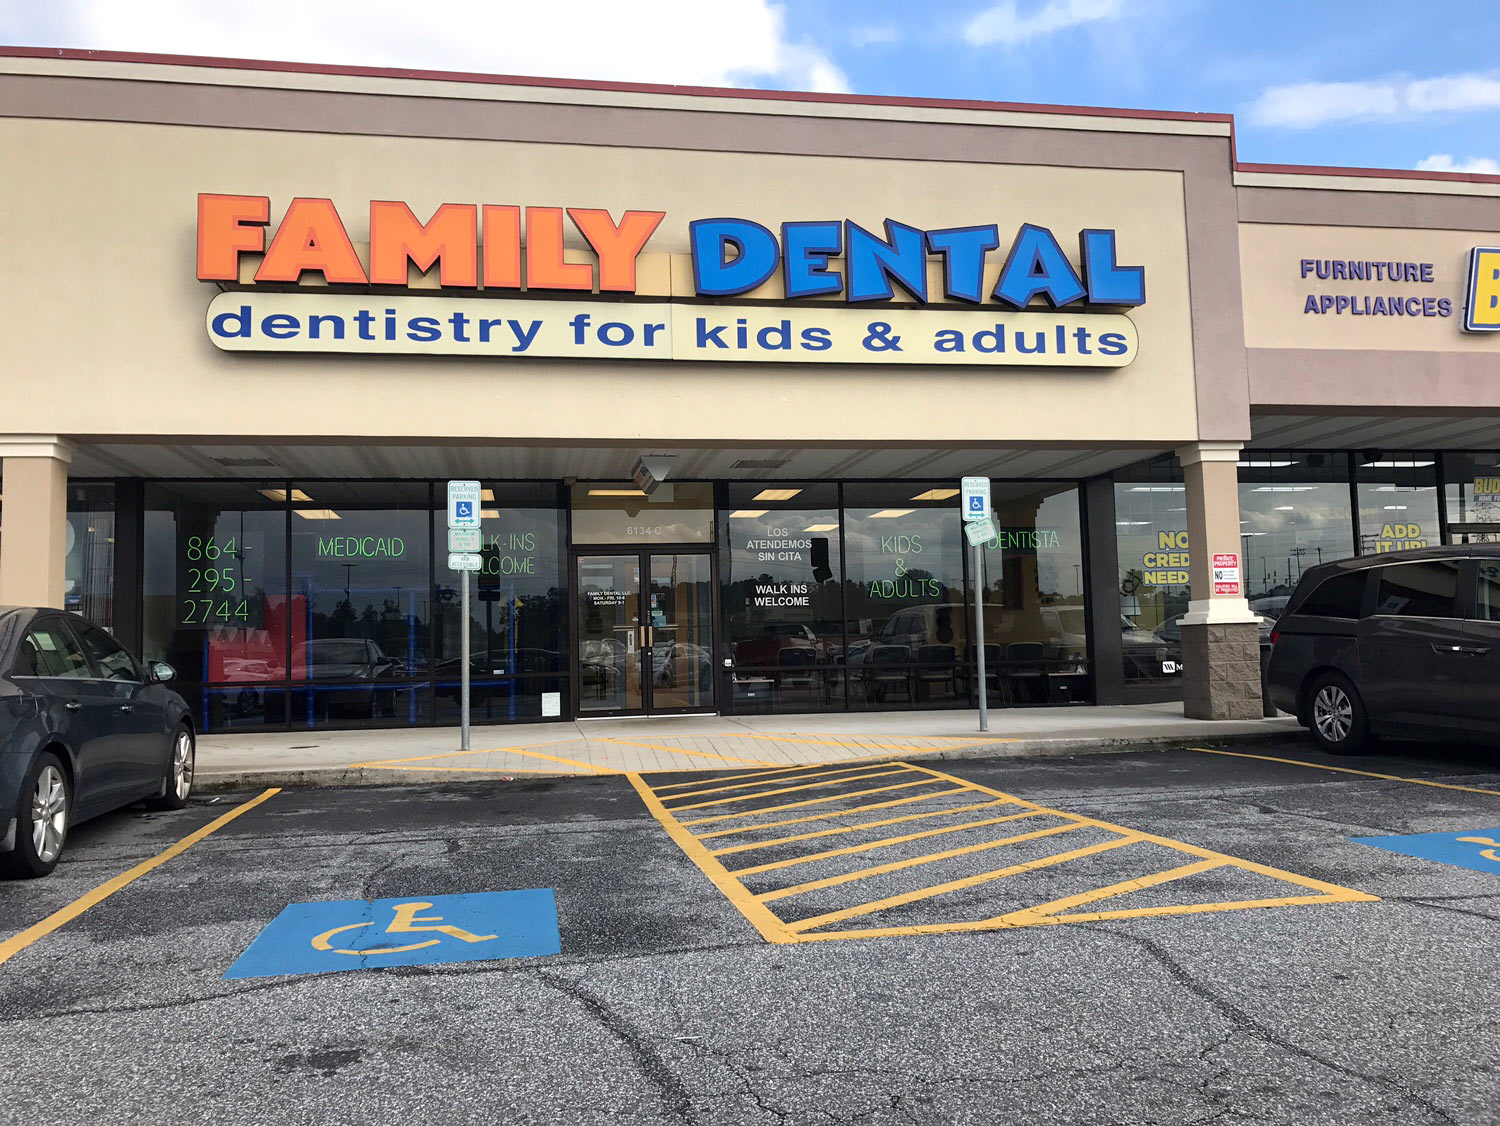 Photo of Family Dental - White Horse Rd in Greenville, SC 29611